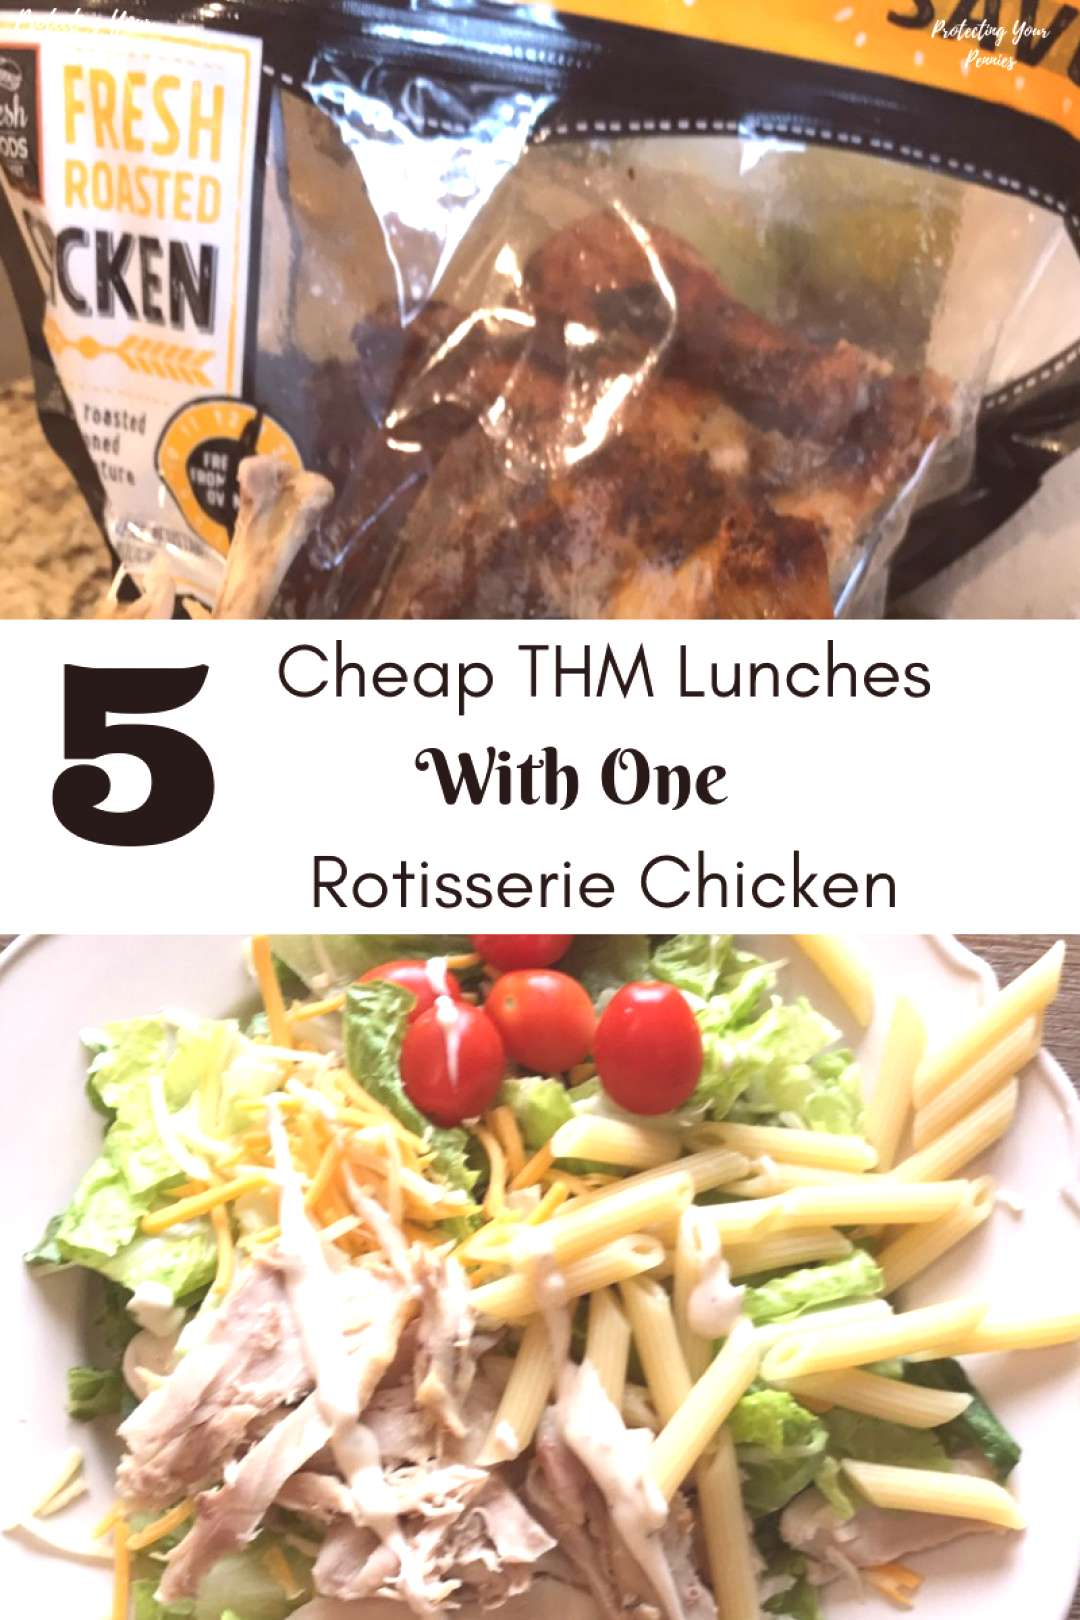 One Rotisserie Chicken, Five THM Lunches - Protecting Your Pennies